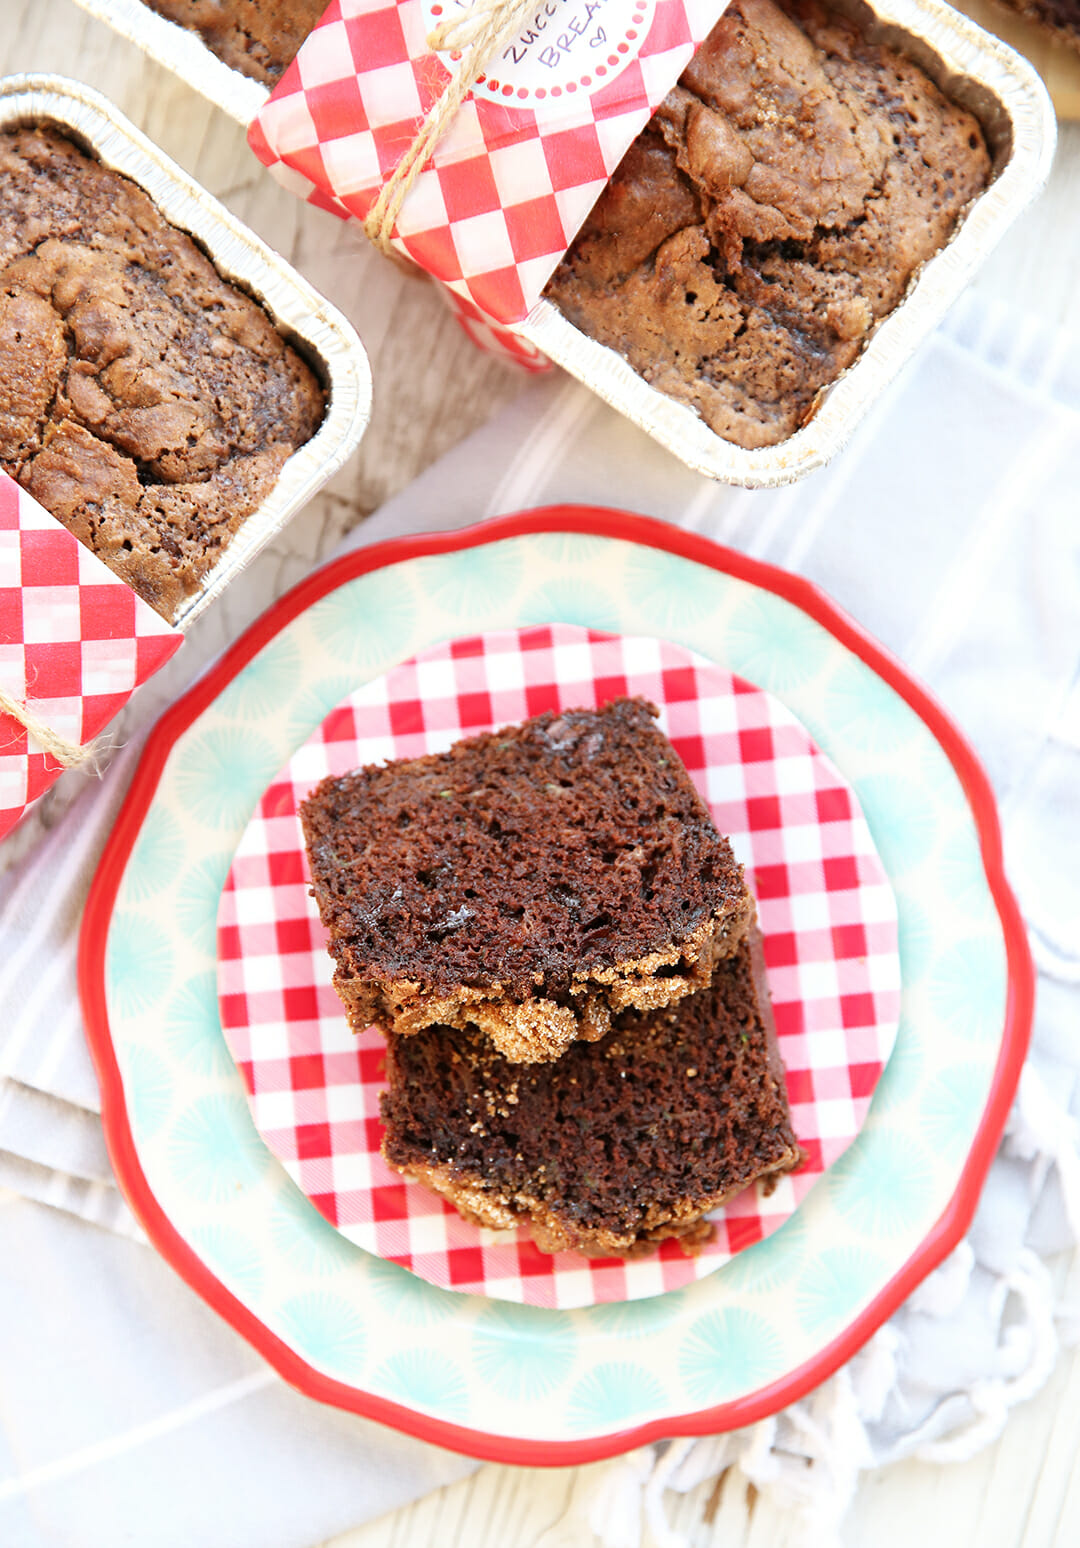 Chocolate Zucchini Bread Our Best Bites